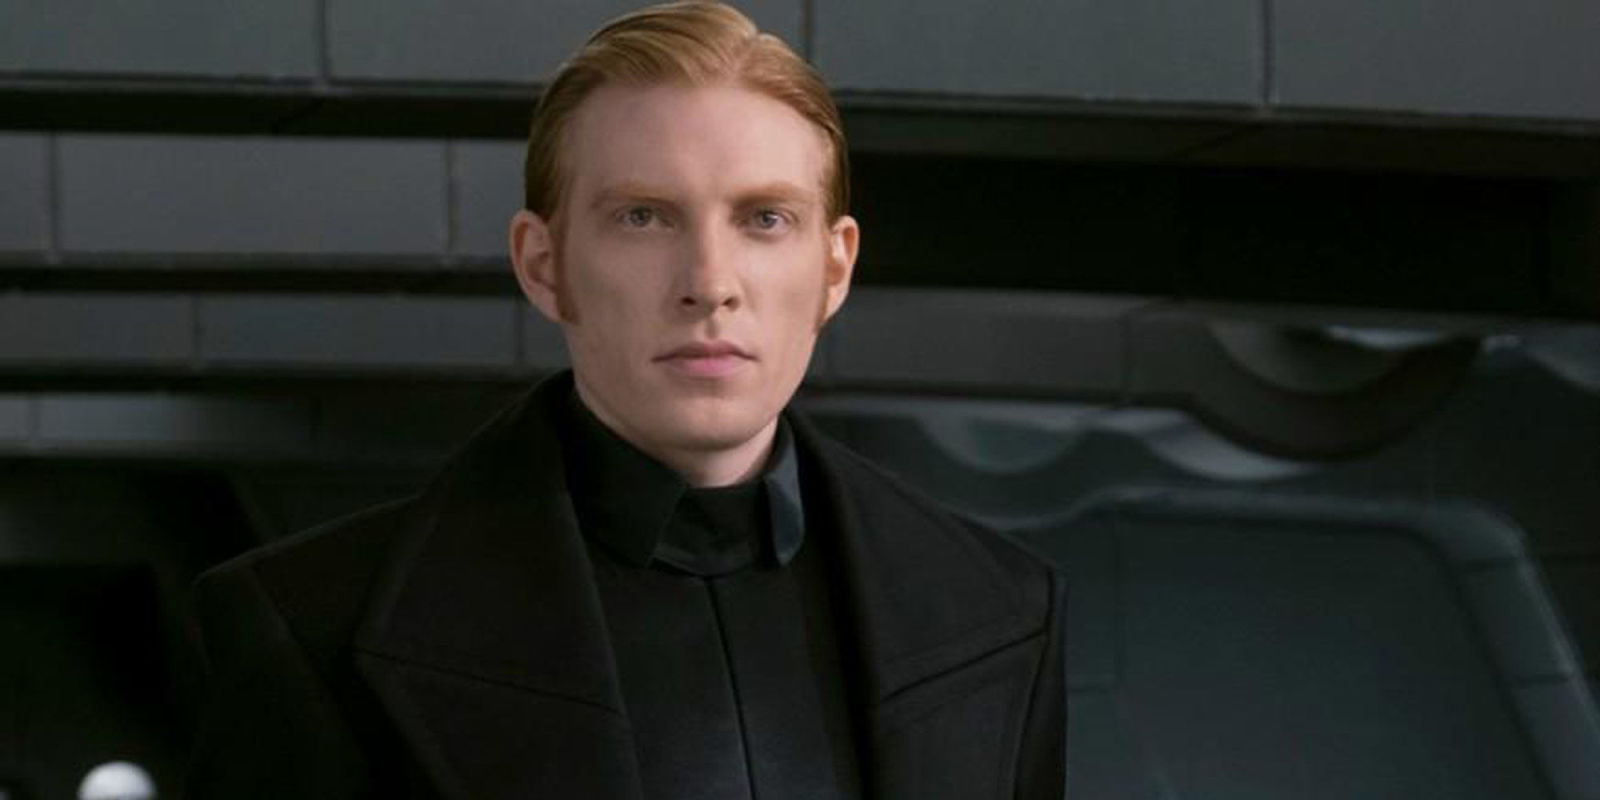 Star Wars Episode 9 might not even feature General Hux